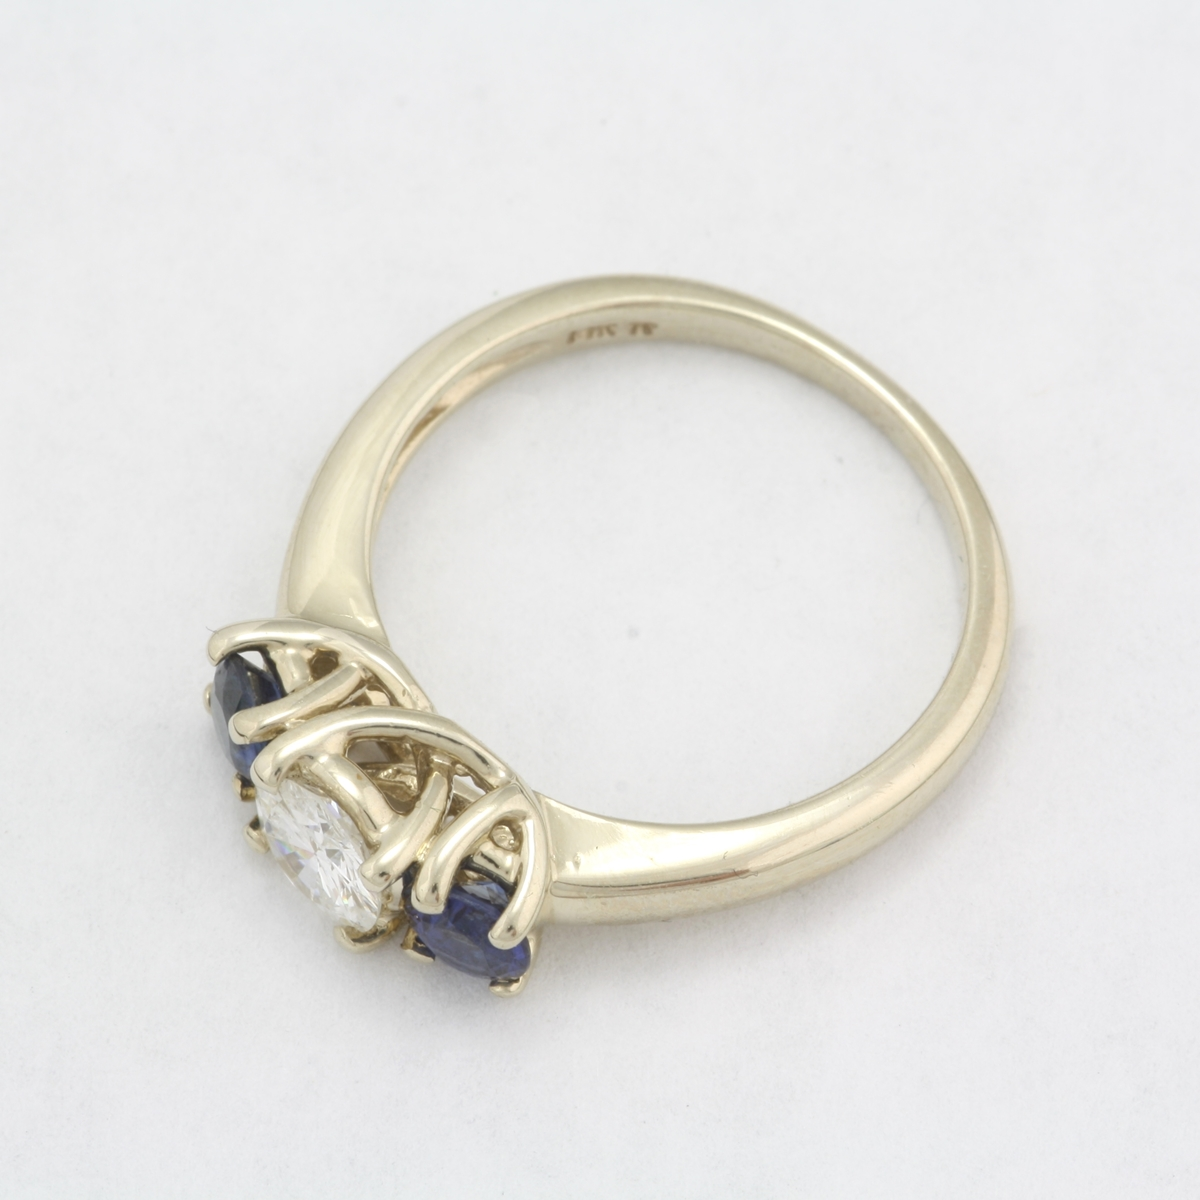 Unique s Pre Owned Engagement Rings for Sale Engagement Wedding Dia